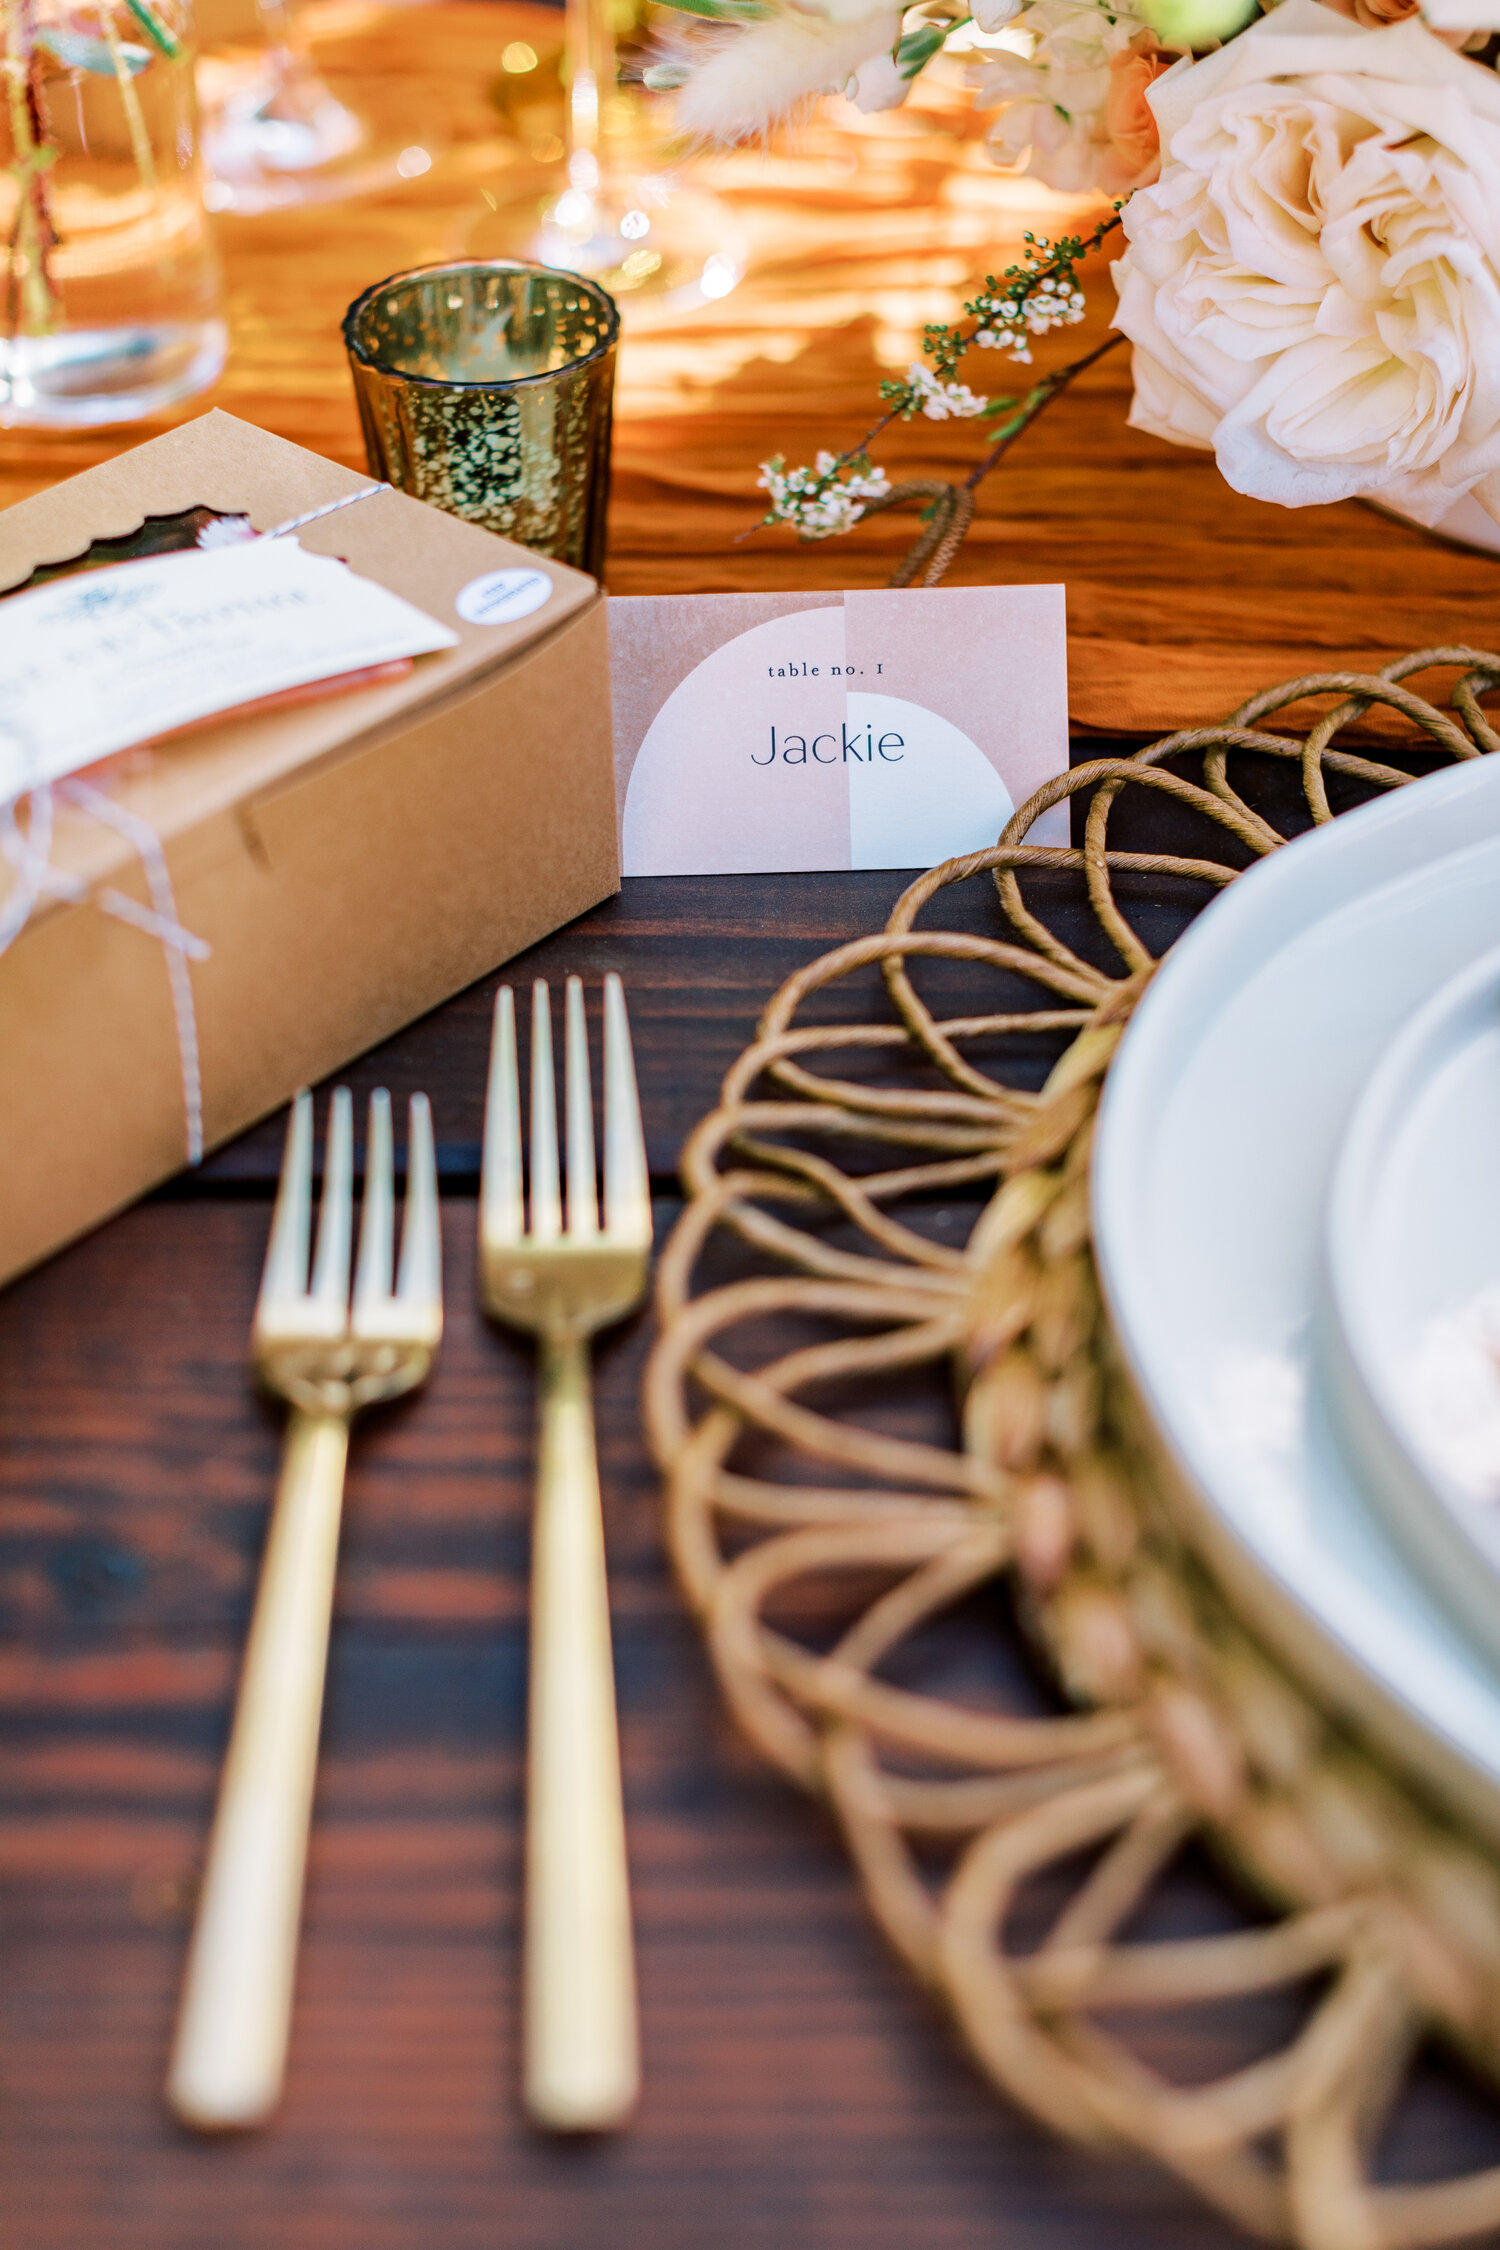 www.santabarbarawedding.com   Events by Fran   Ever After Petite Venue   Kendall Ann Photo   Tangled Lotus   Amigo Party Rentals   Love and Fromage   Styled Reception Table and Grazing Box